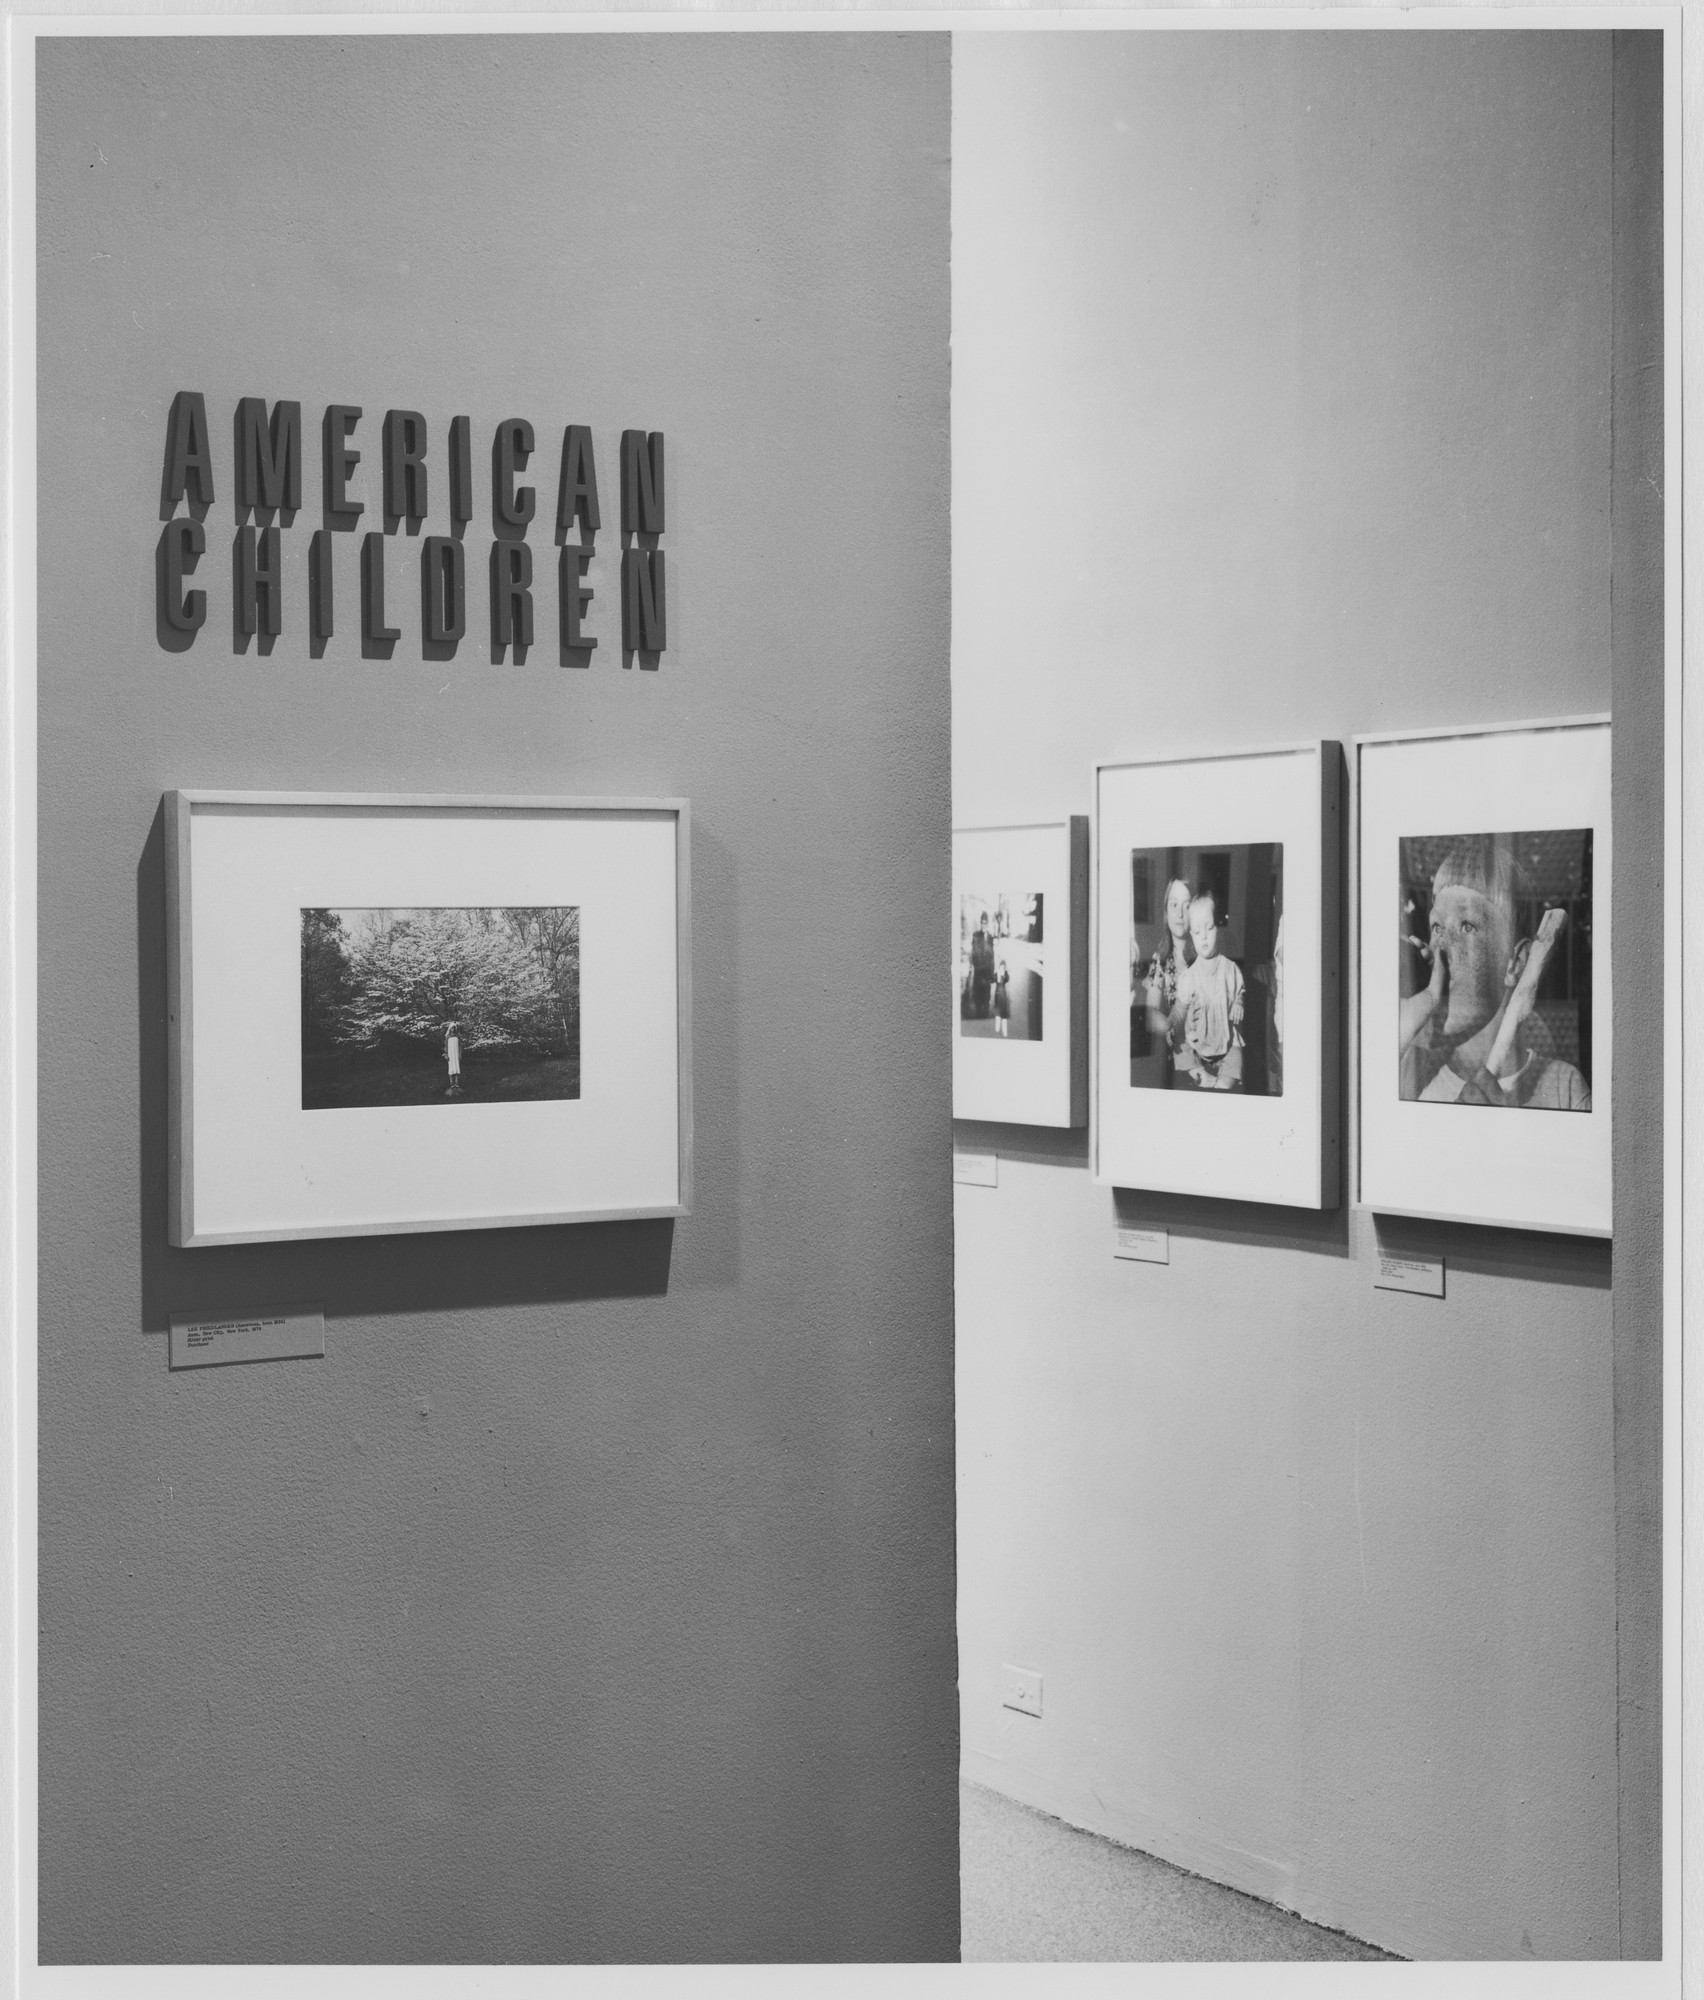 "Installation view of the exhibition, ""American Children"" January 8, 1981–March 29, 1981. Photographic Archive. The Museum of Modern Art Archives, New York. IN1301.1. Photograph by Mali Olatunji."